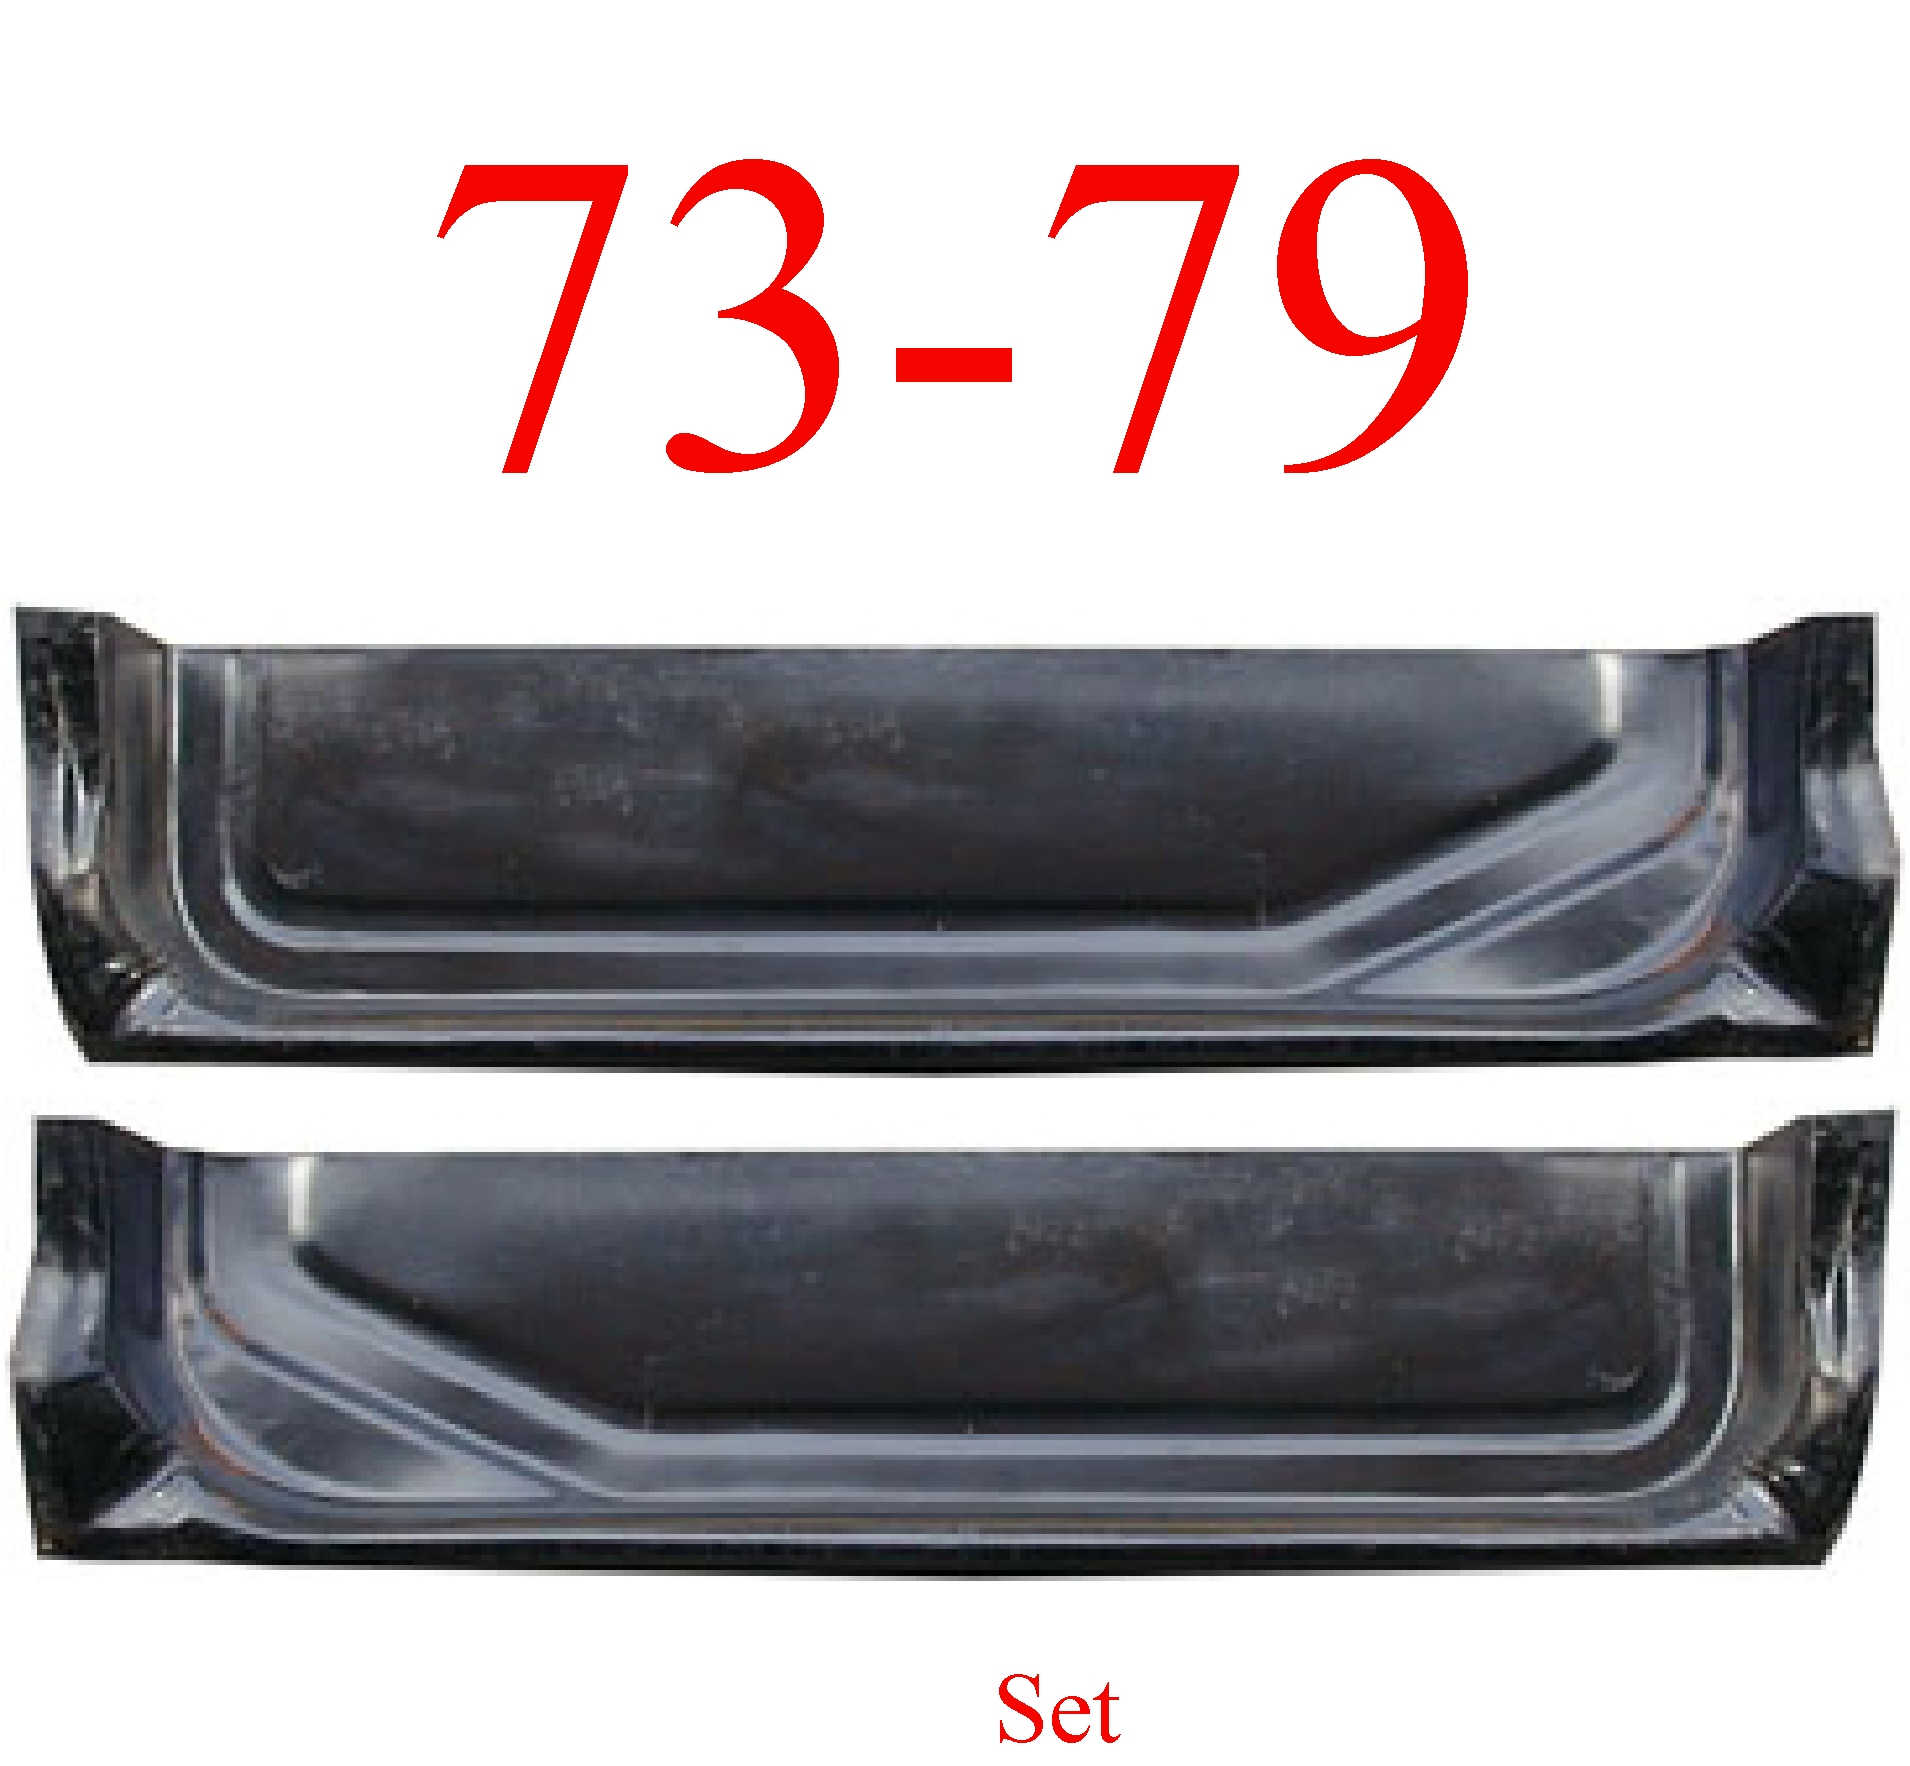 73-79 Ford Door Inner Bottom Set